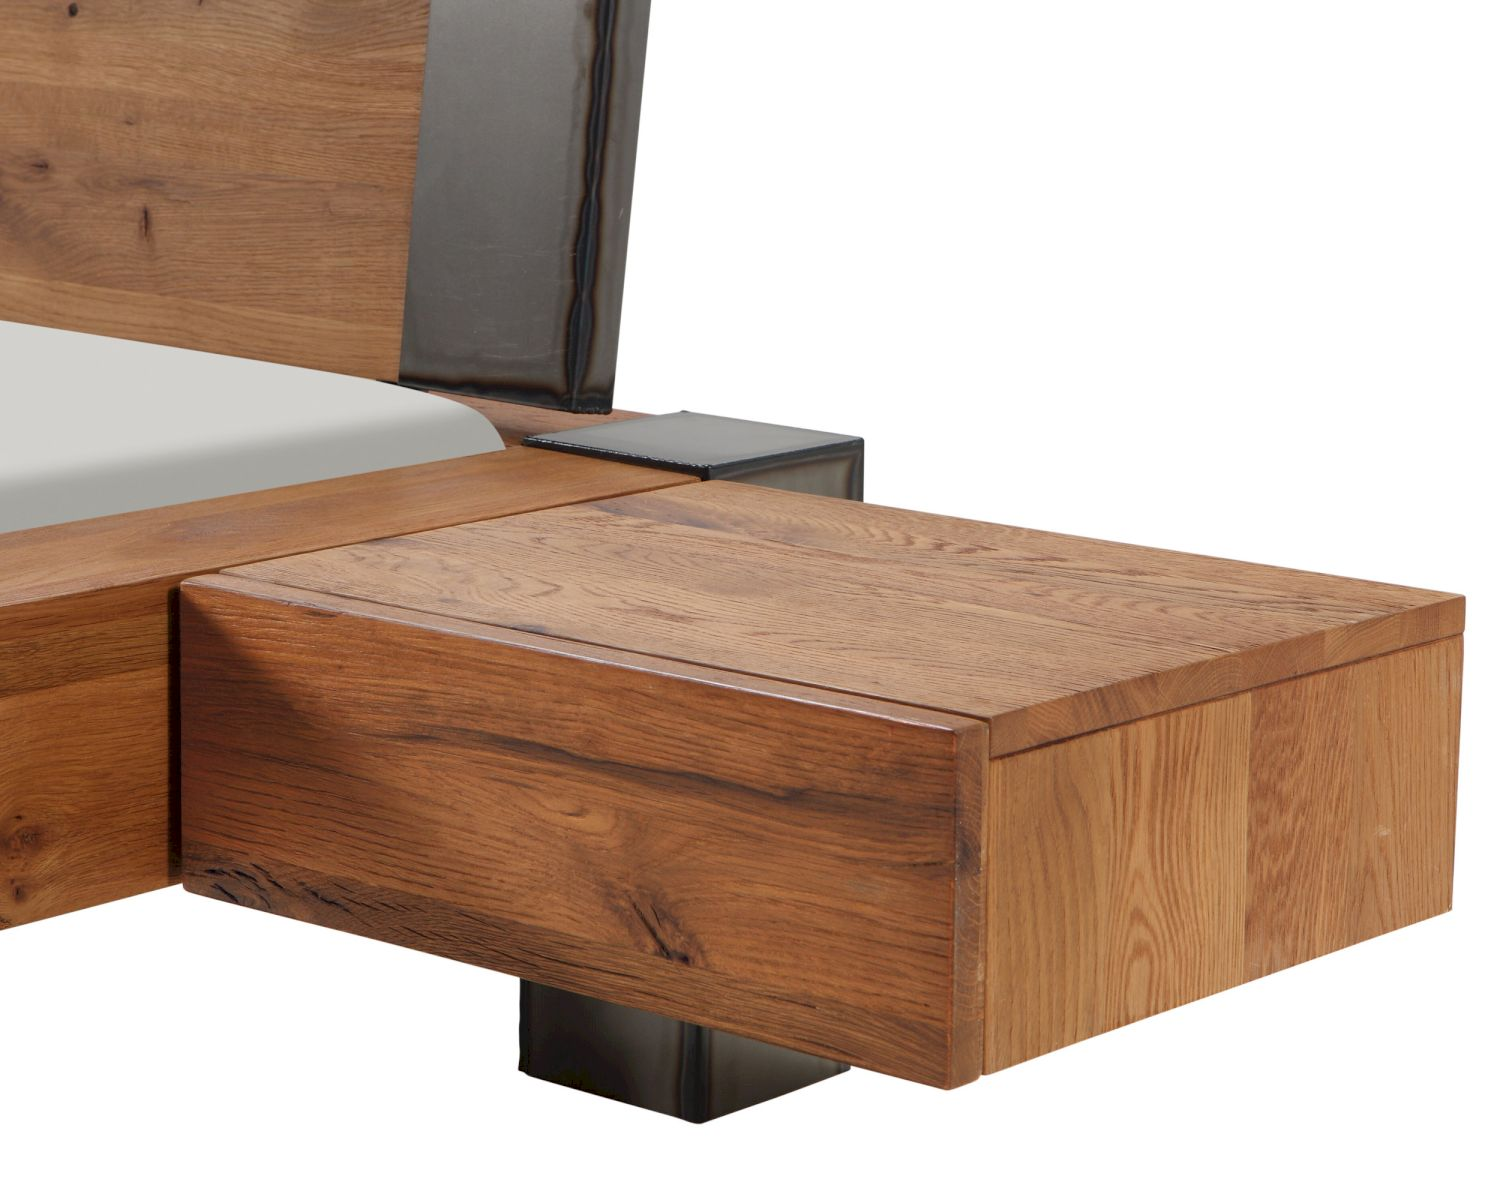 hasena oak line wild nachttisch caja bei. Black Bedroom Furniture Sets. Home Design Ideas